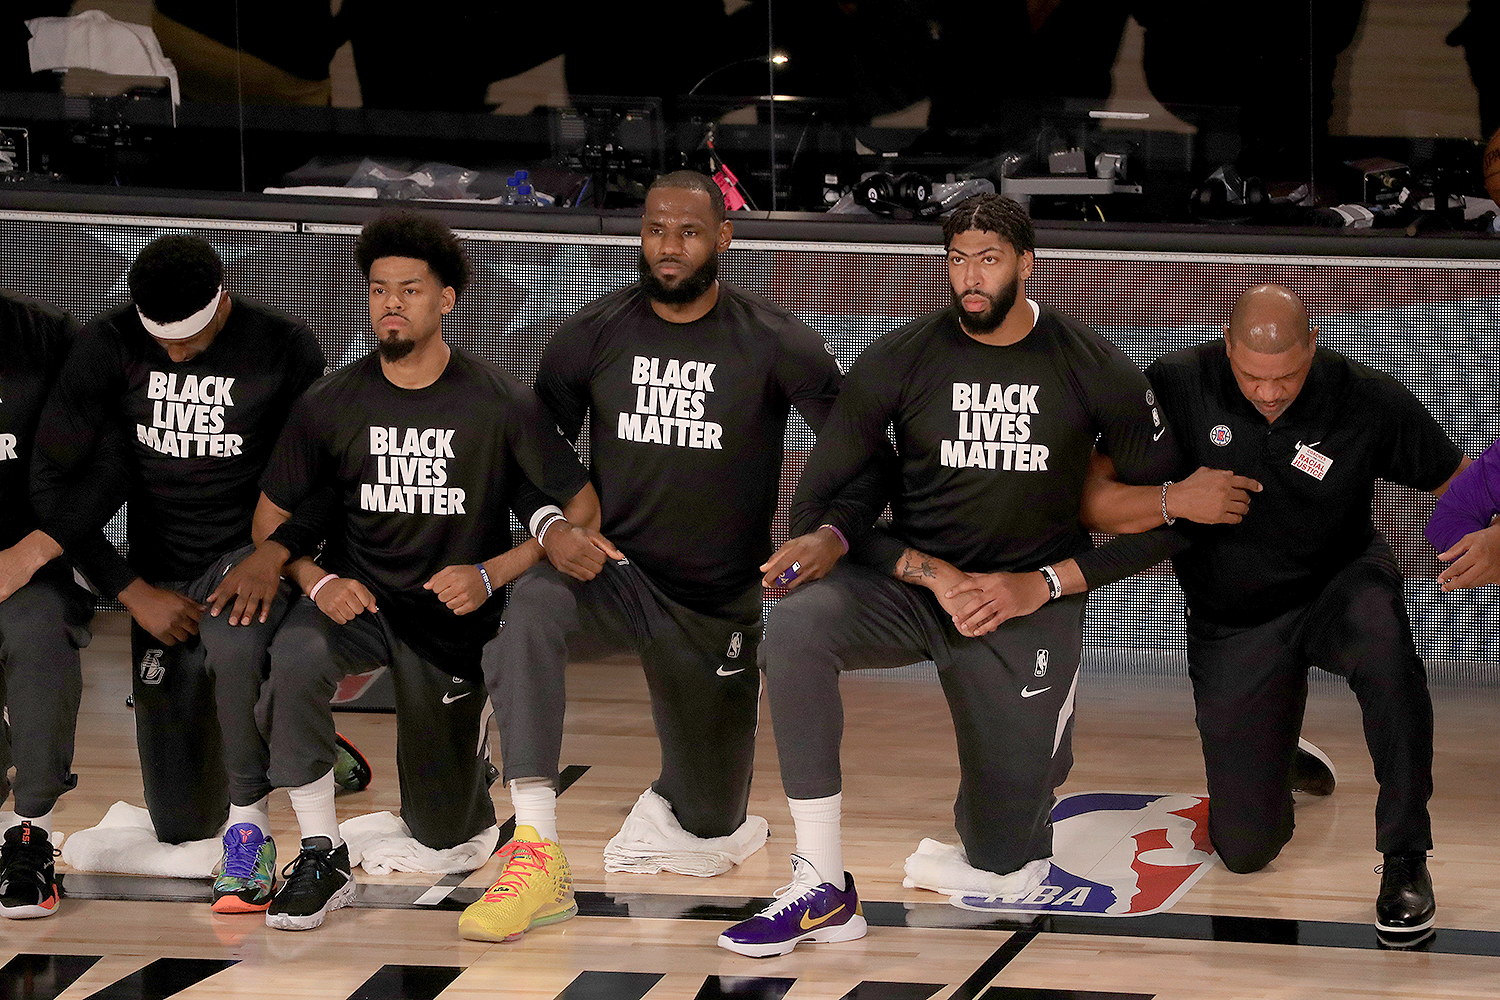 LeBron James kneels alongside teammates and coaches during the 2020 NBA playoffs MIKE EHRMANN   GETTY IMAGES